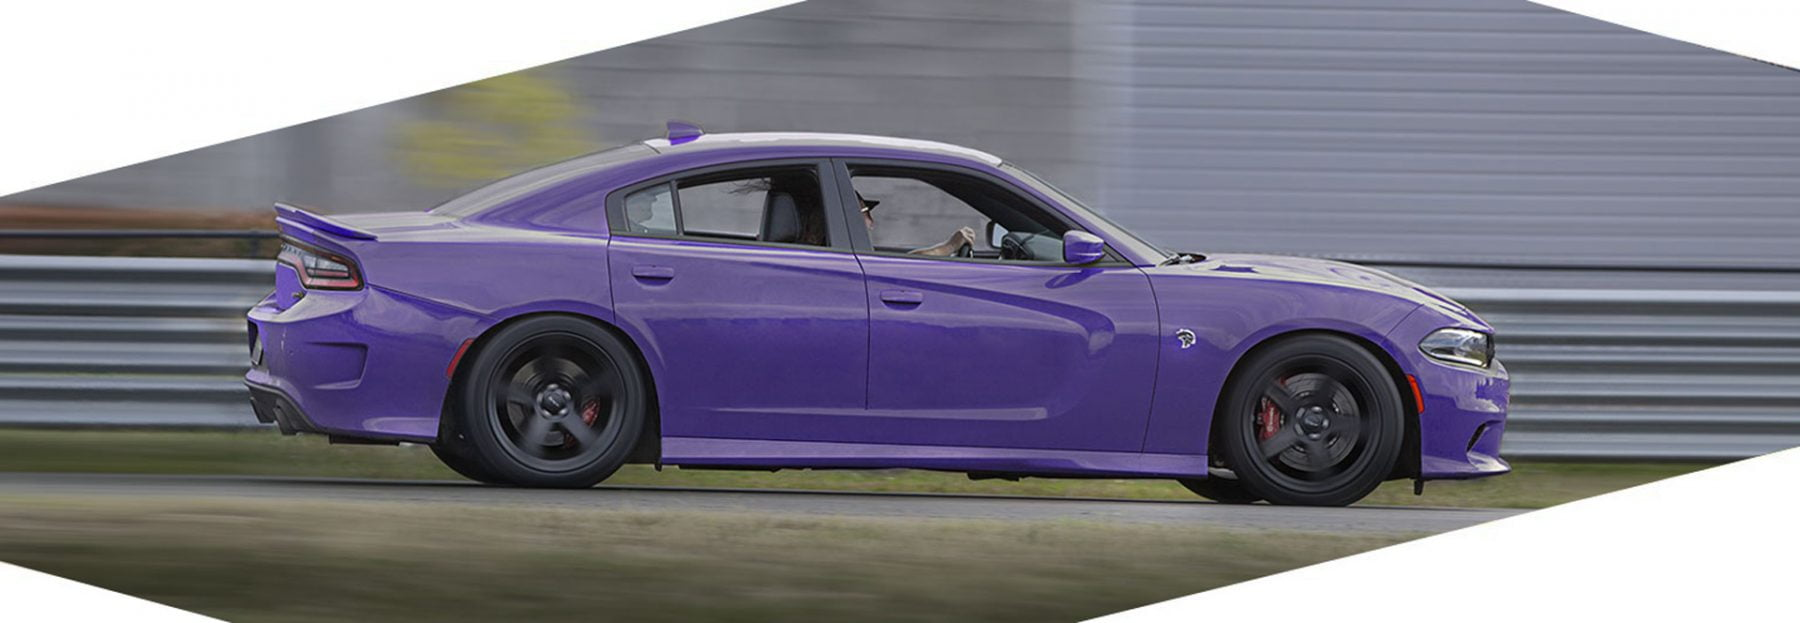 Plumcrazy Dodge Charger